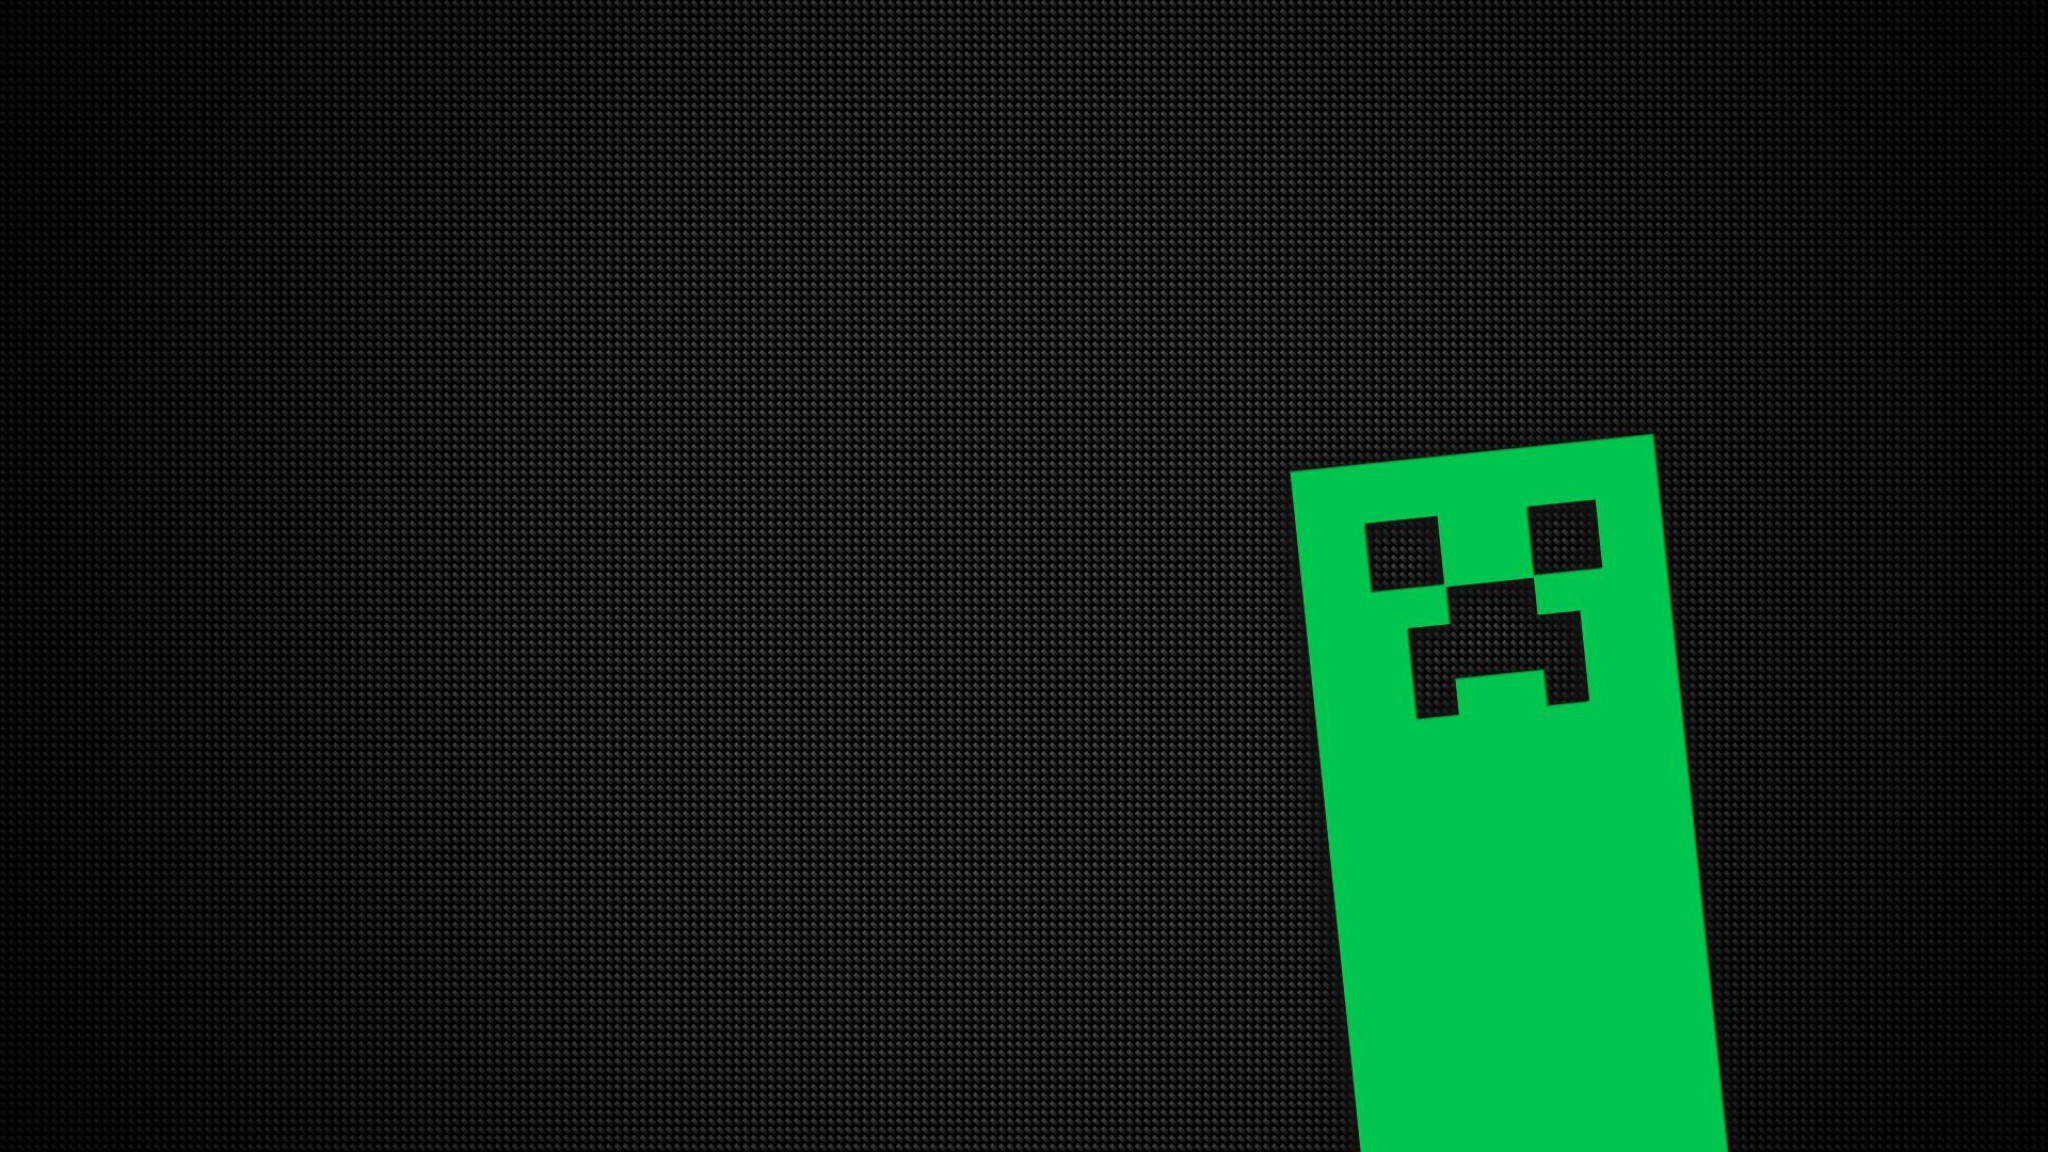 2048 Tall Pixels Picture X 1152 Wide Minecraft